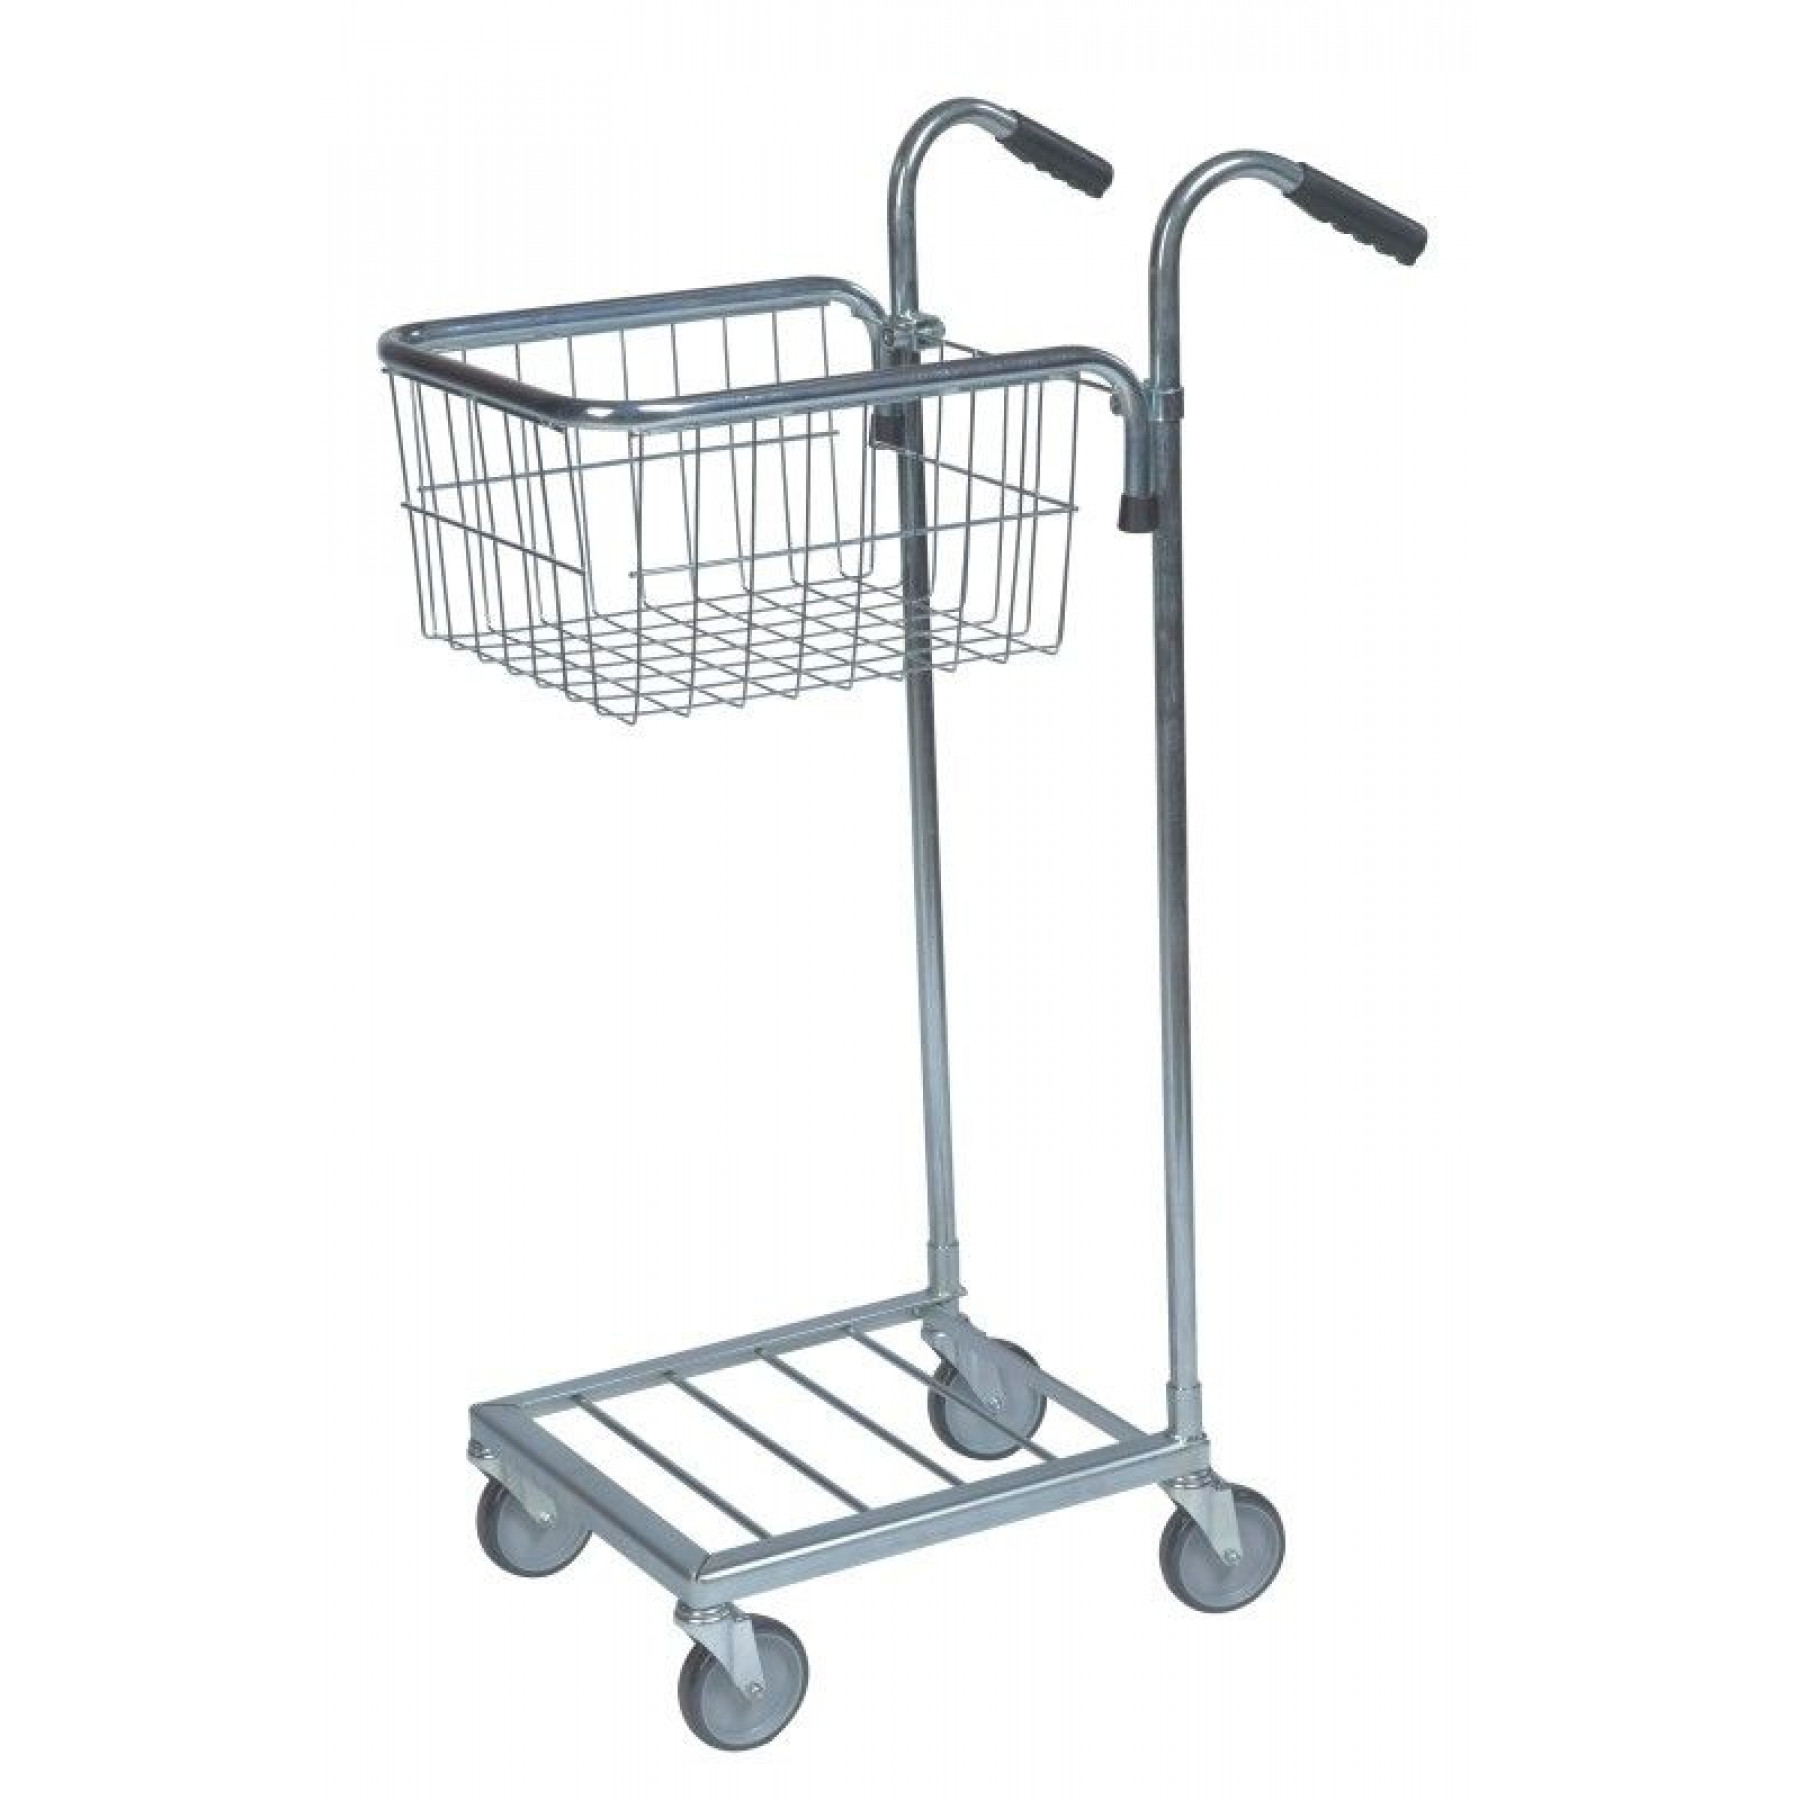 Mini trolley met 1 draadmand, KM 153-T